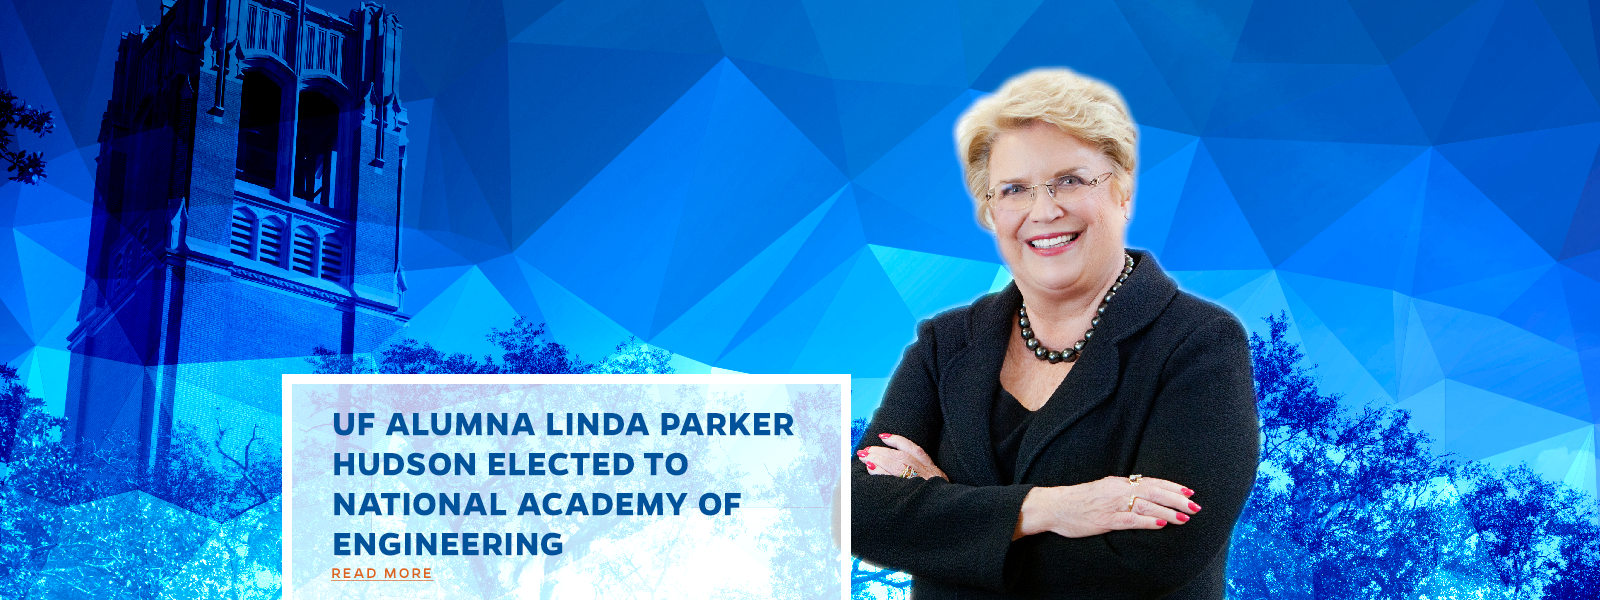 UF Alumna Linda Parker Hudson Elected to National Academy of Engineering